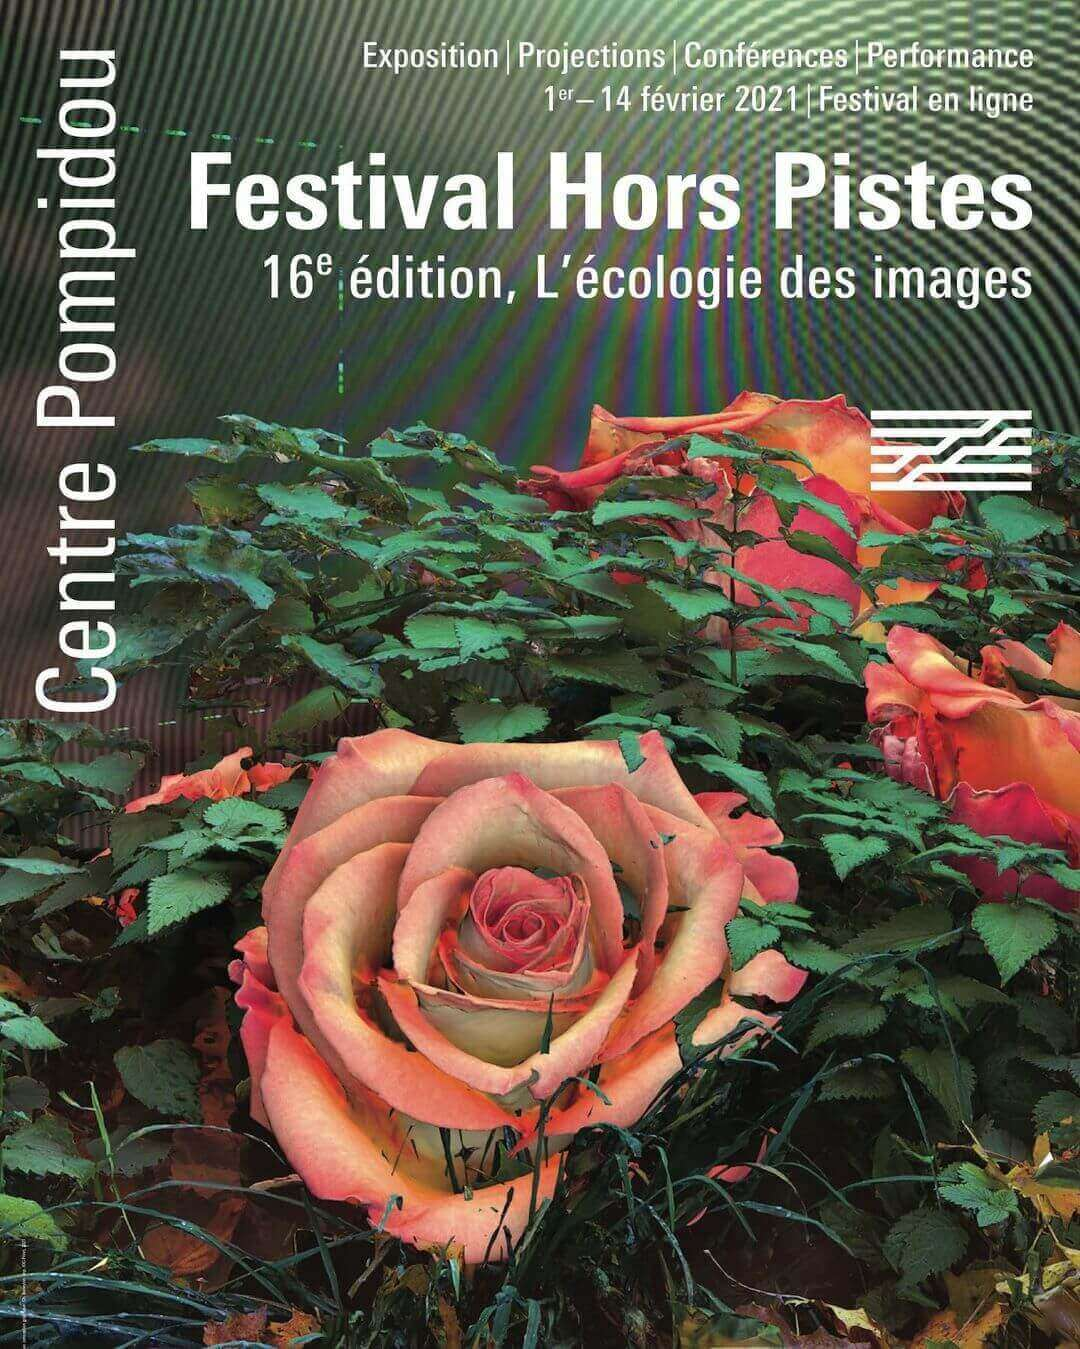 Sabrina Ratté Festival Hors Pistes at Centre Pompidou from 1-14 February 2021 in Paris